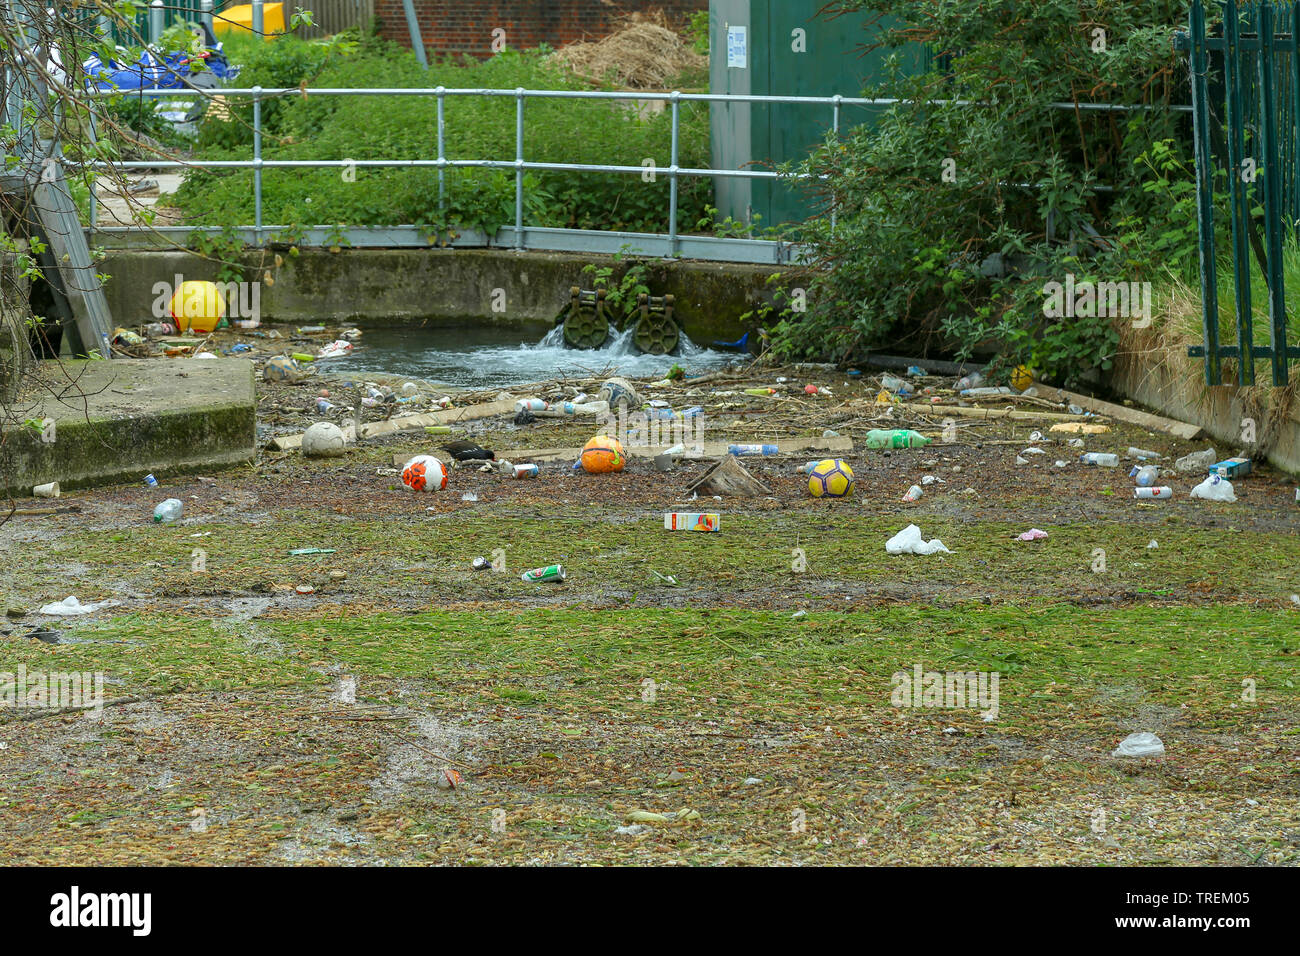 Different type of garbage floating in a canal. Woodberry down, Stokenewington. London, UK. - Stock Image